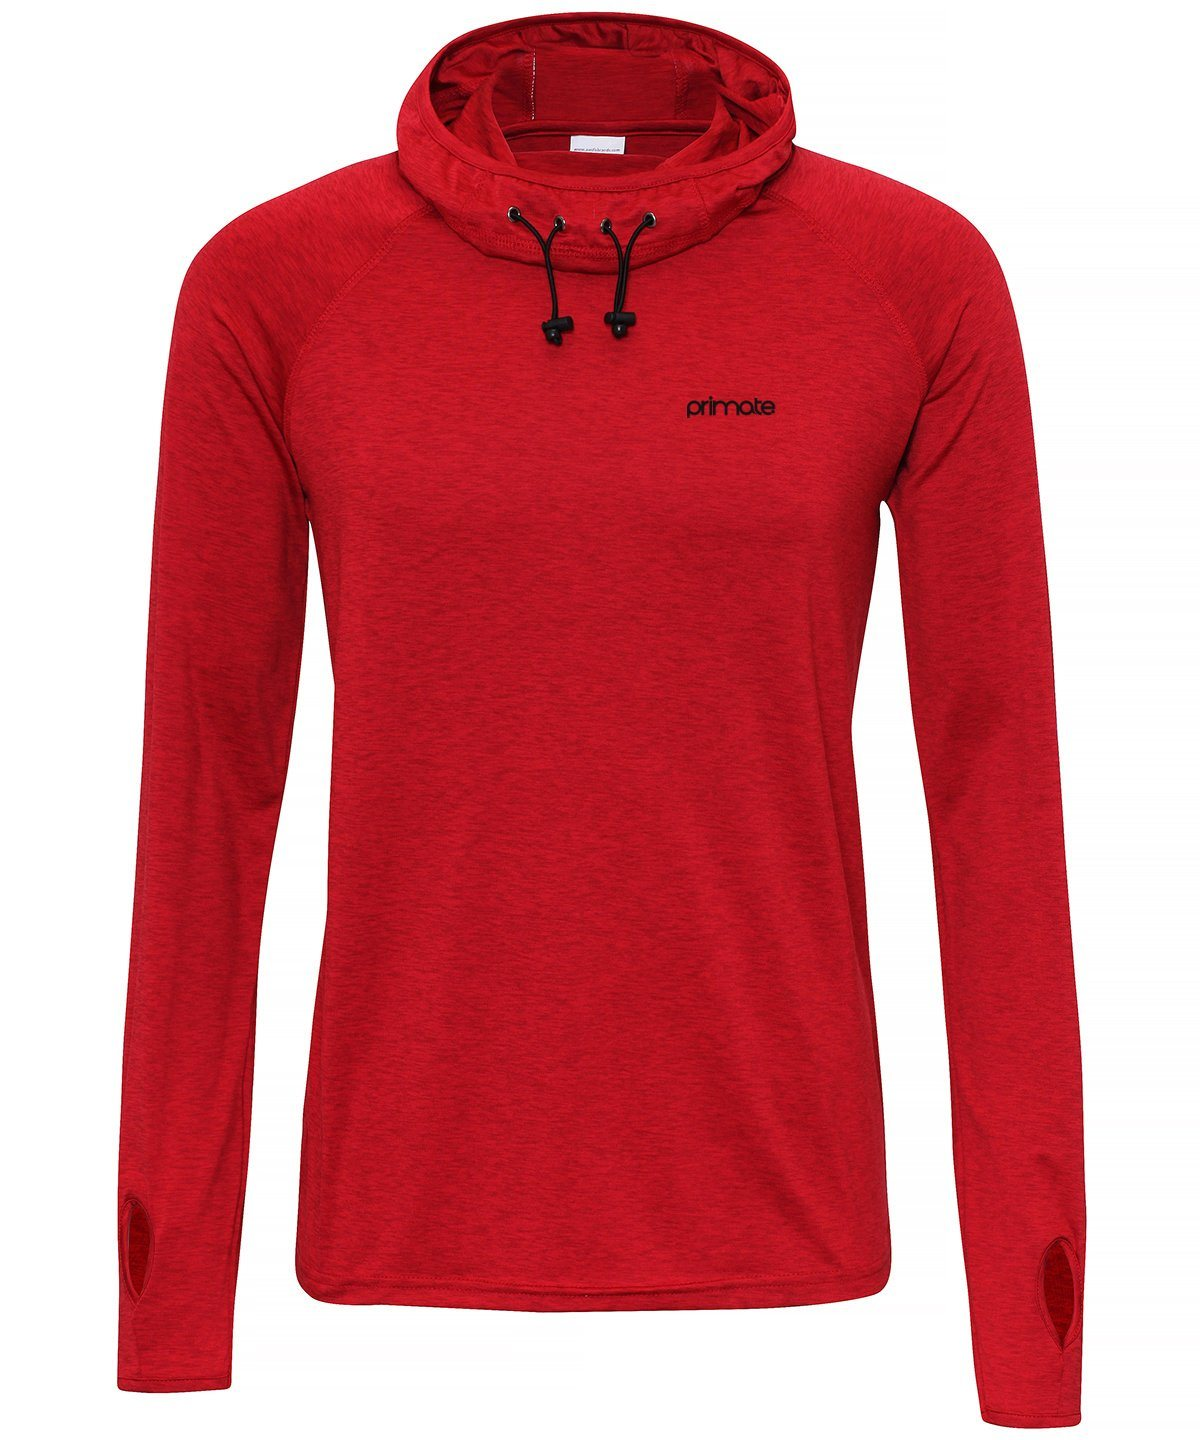 Men's Performance Cowl Neck Hoodie Primate Activewear Red 2XL